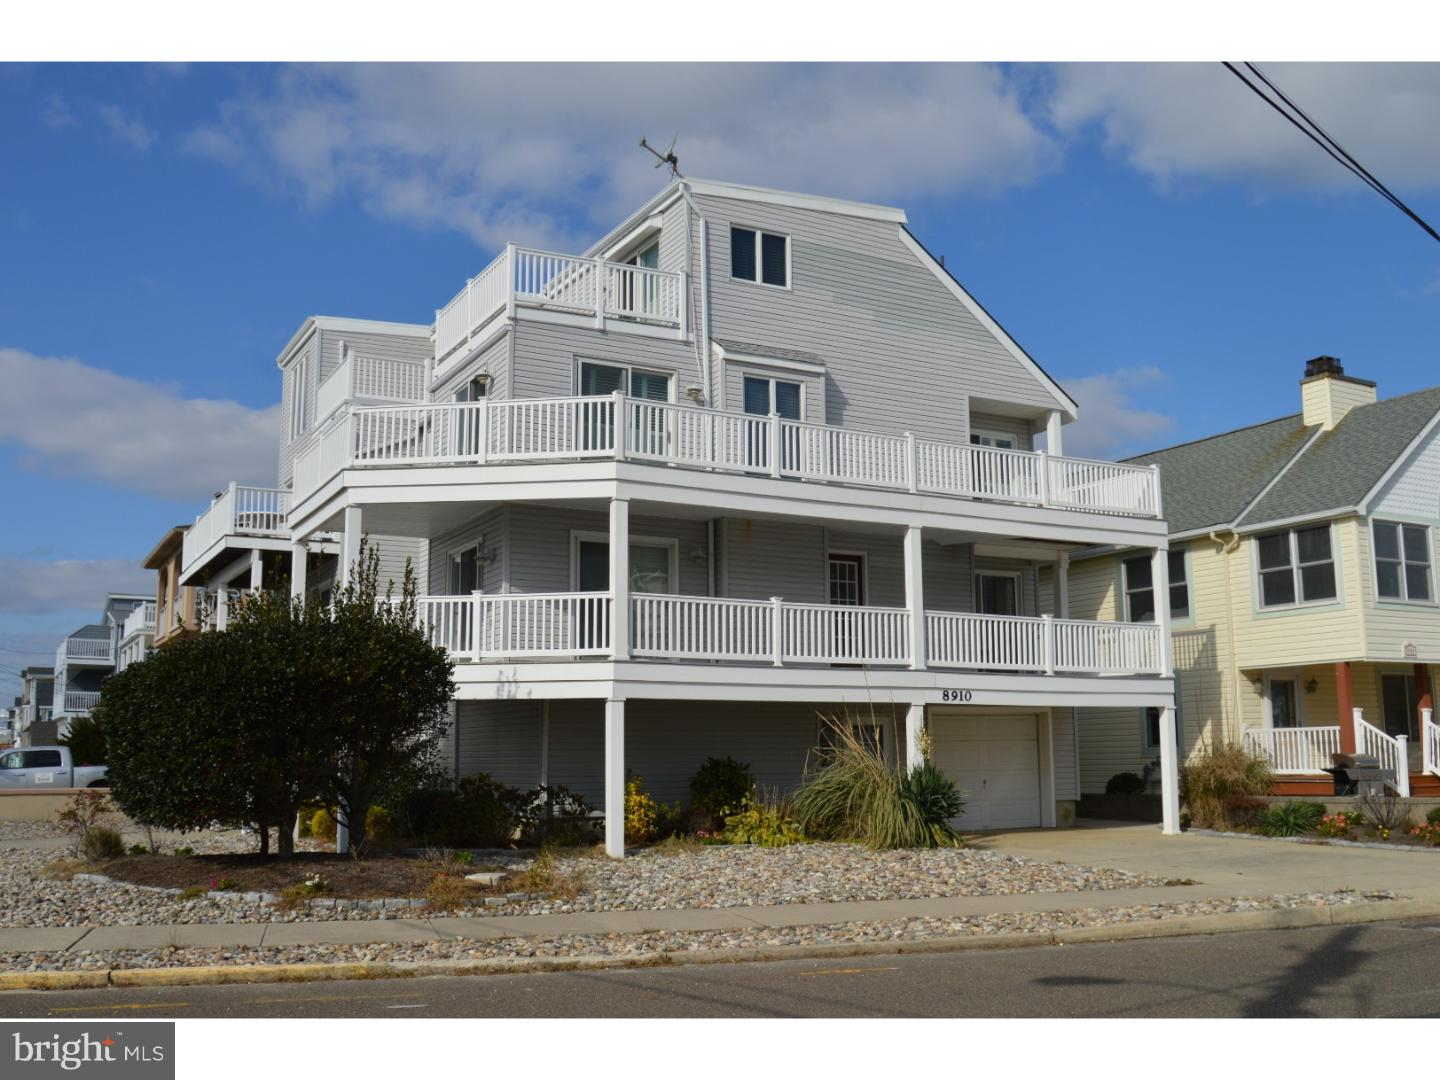 Single Family Home for Sale at 8910 PLEASURE AVE #EAST Sea Isle City, New Jersey 08243 United States